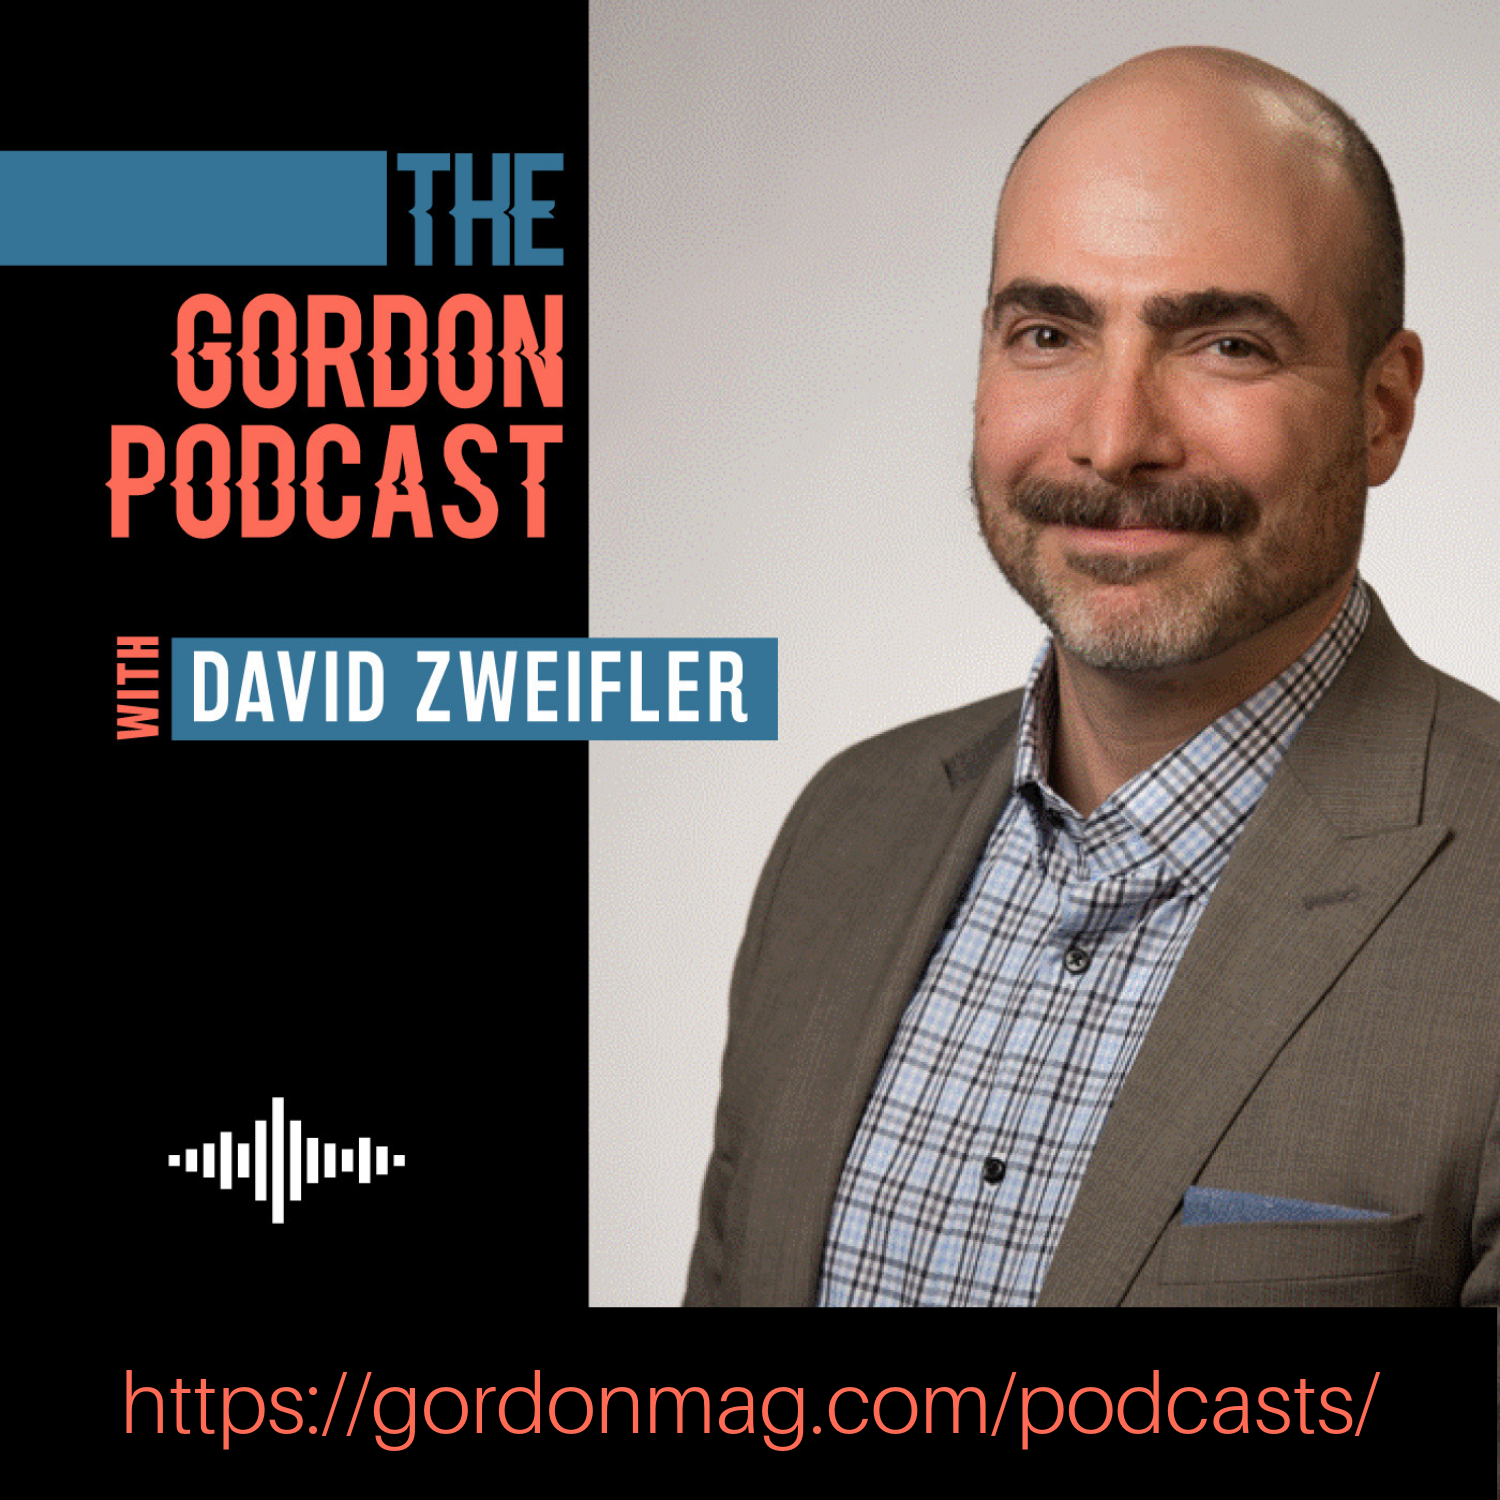 Episode 9: Retail Training Prescription From The Retail Doctor